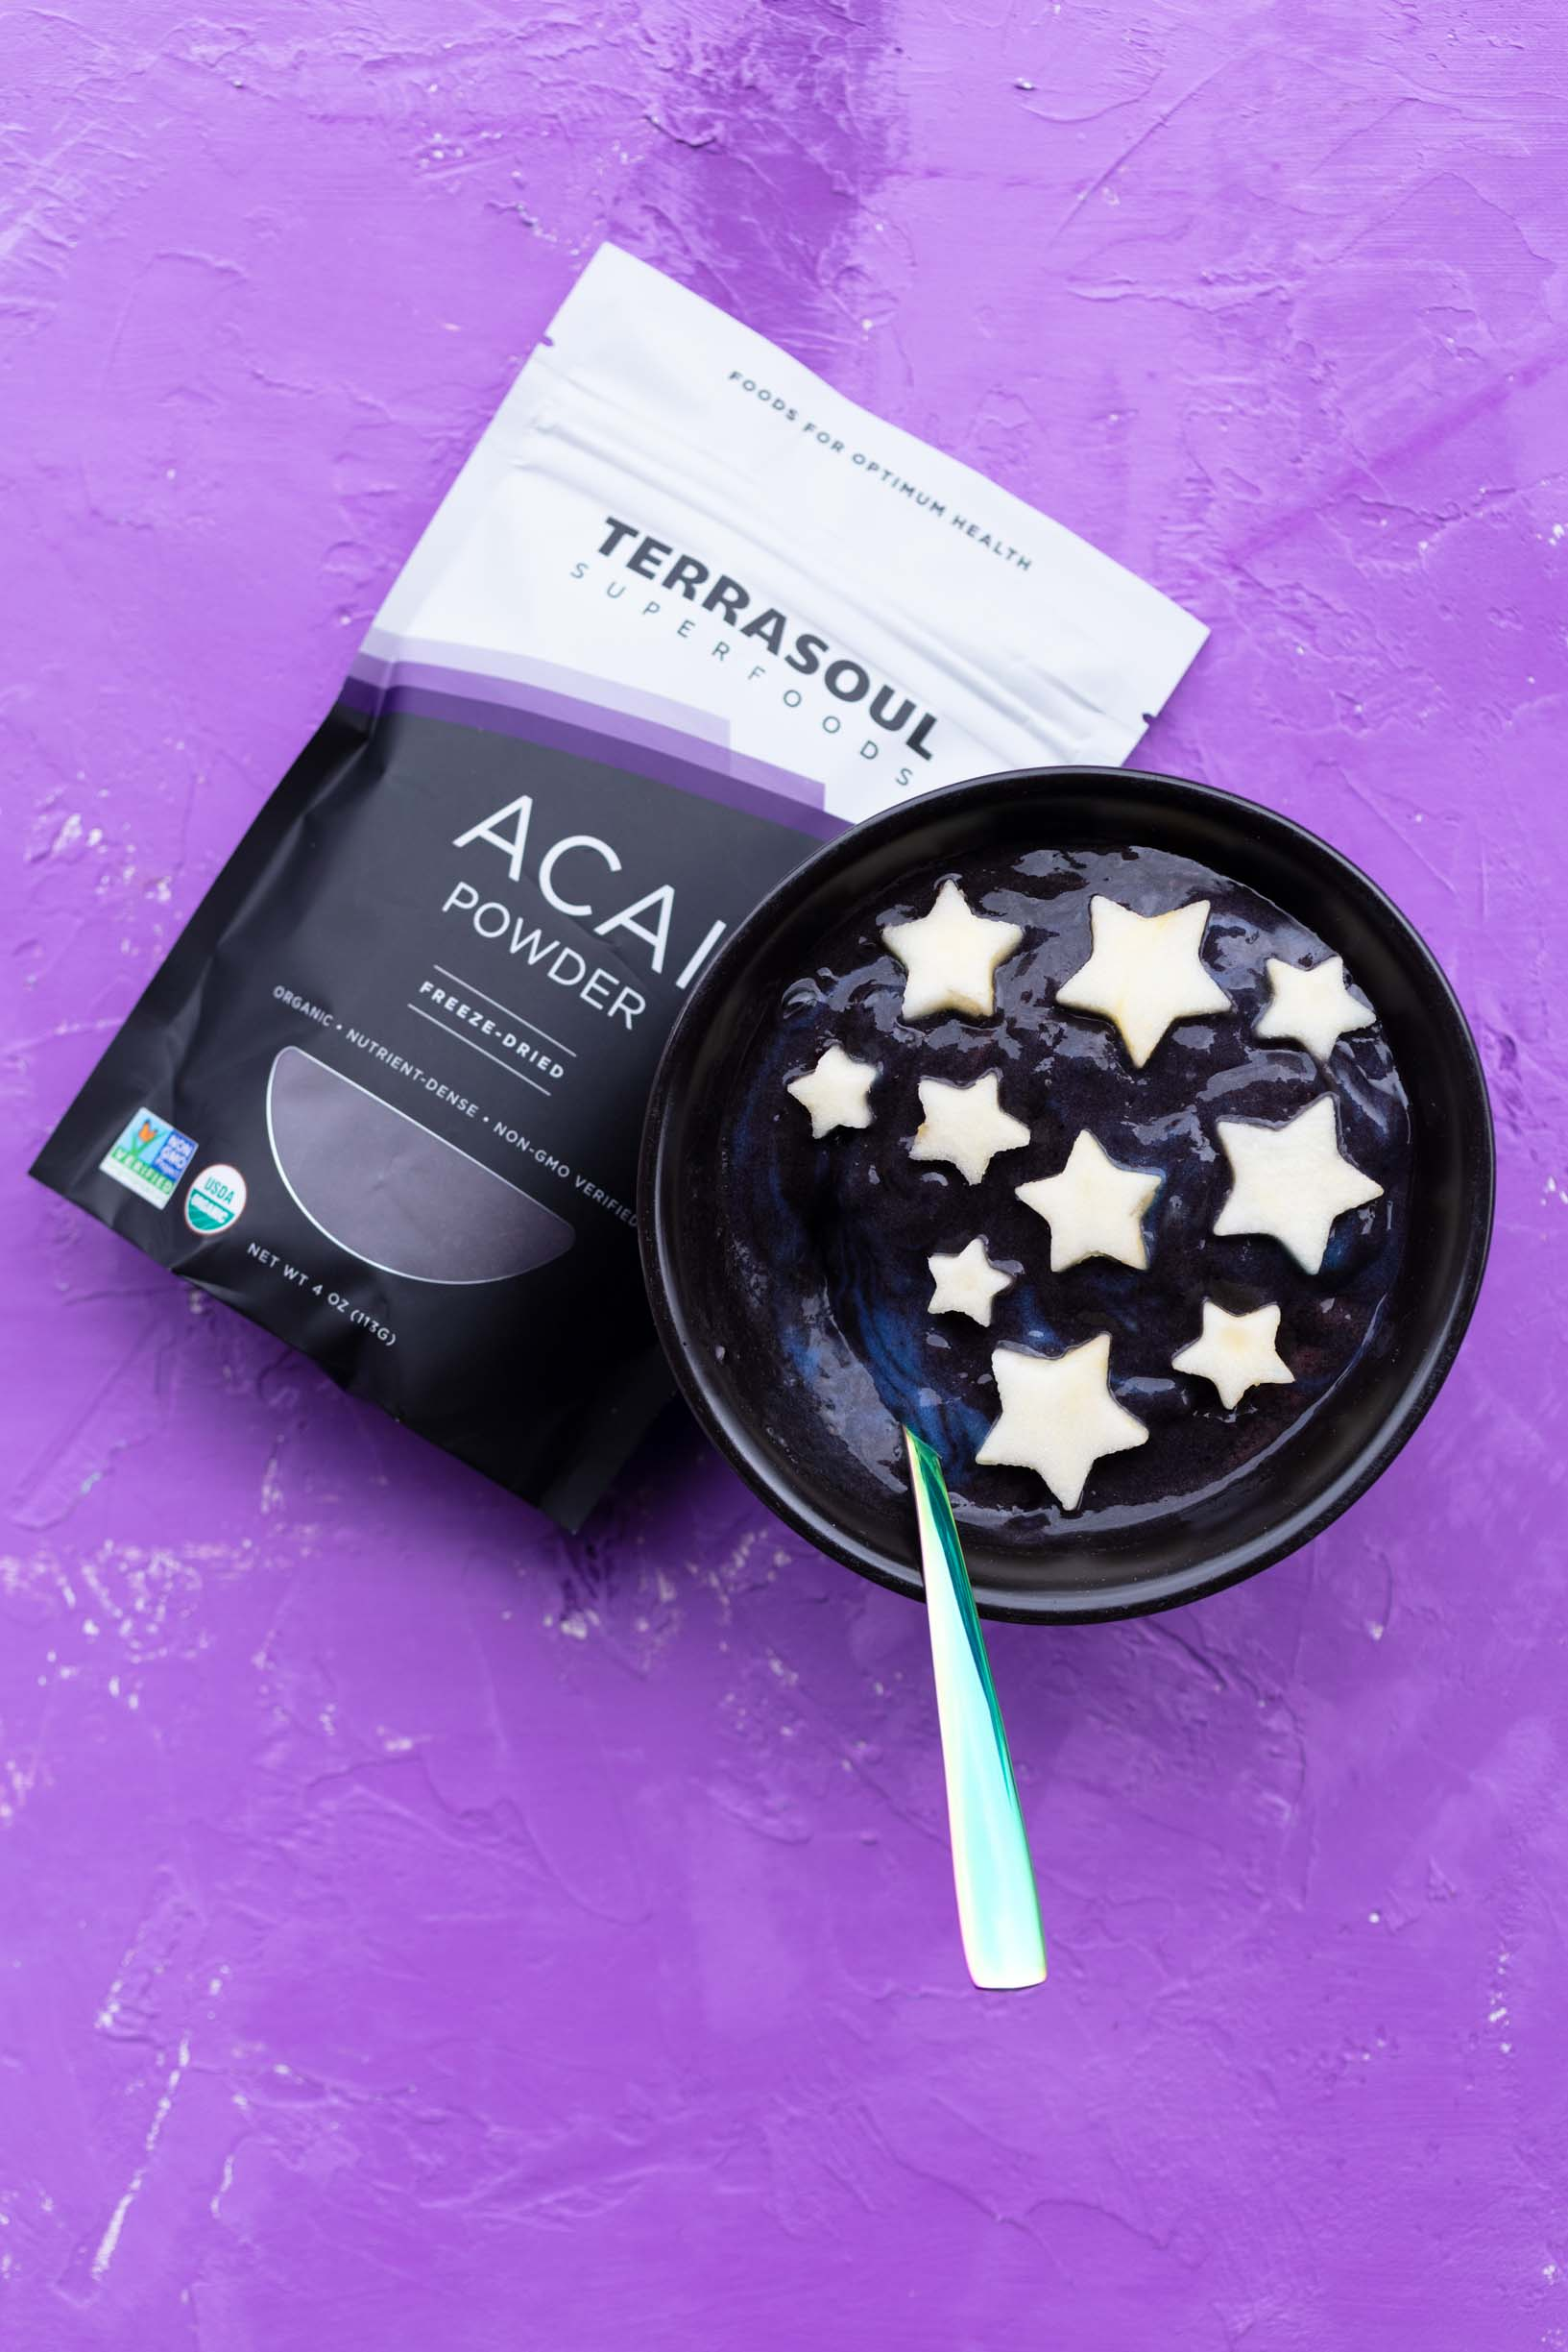 galaxy smoothie bowl next to a package of terrasoul acai